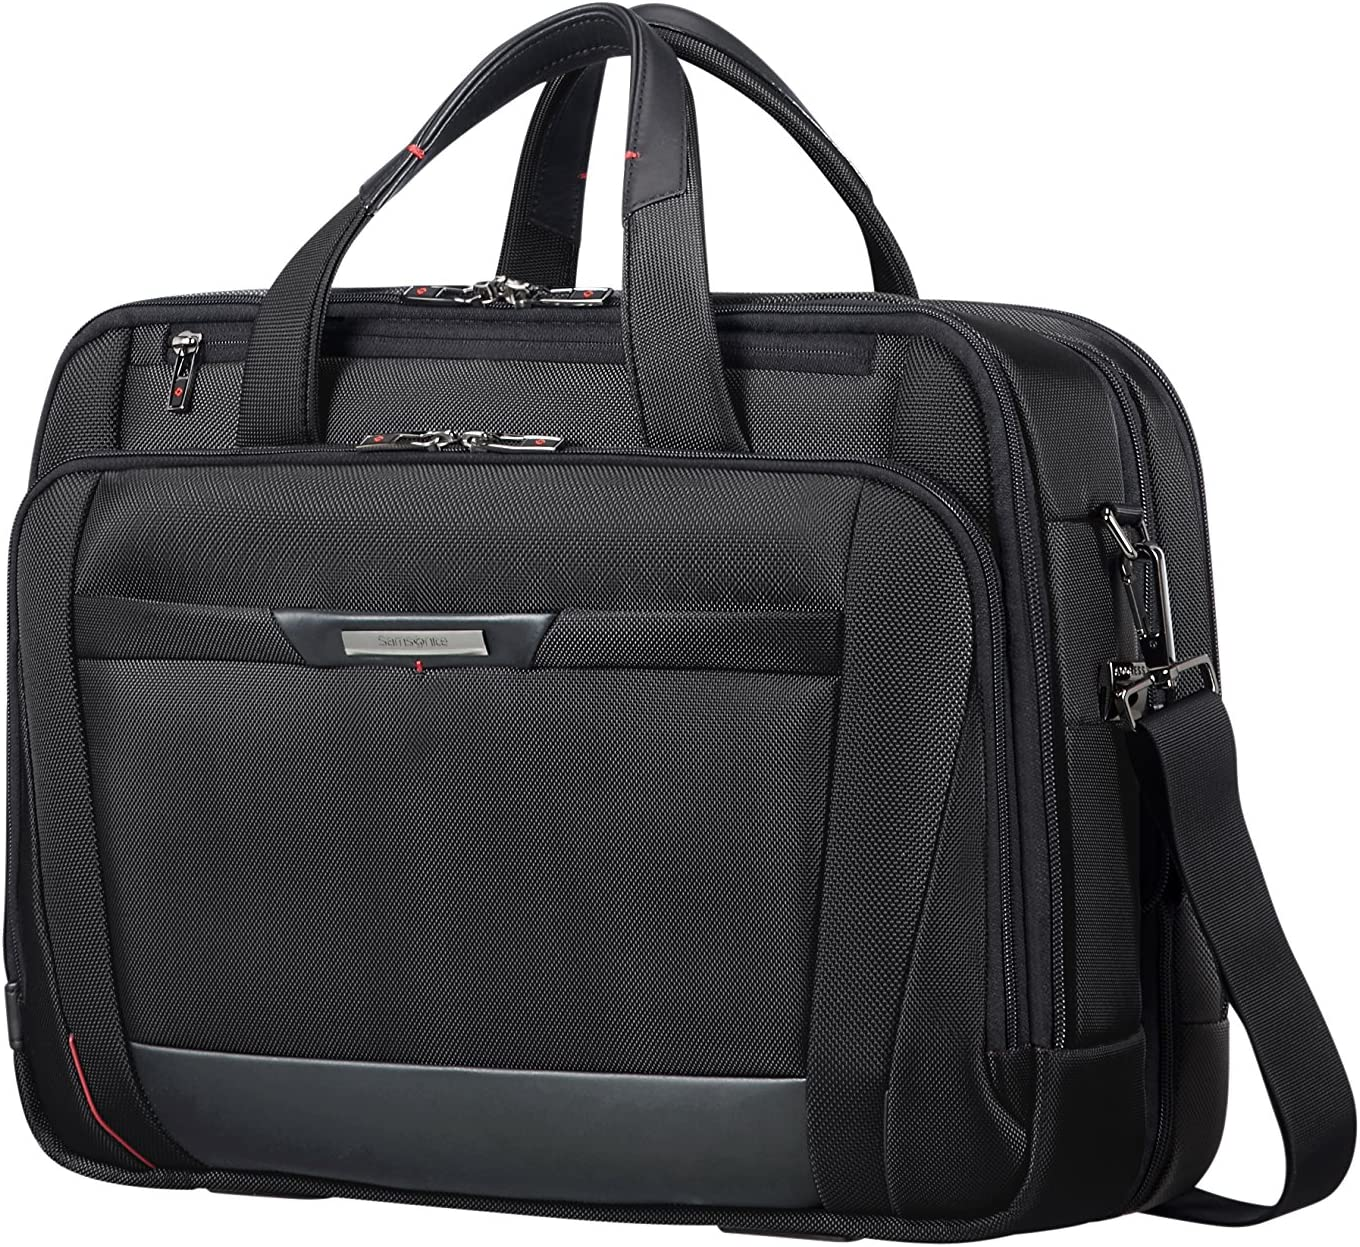 Samsonite PRO-DLX 5 - Bailhandle Expandable for 17.3